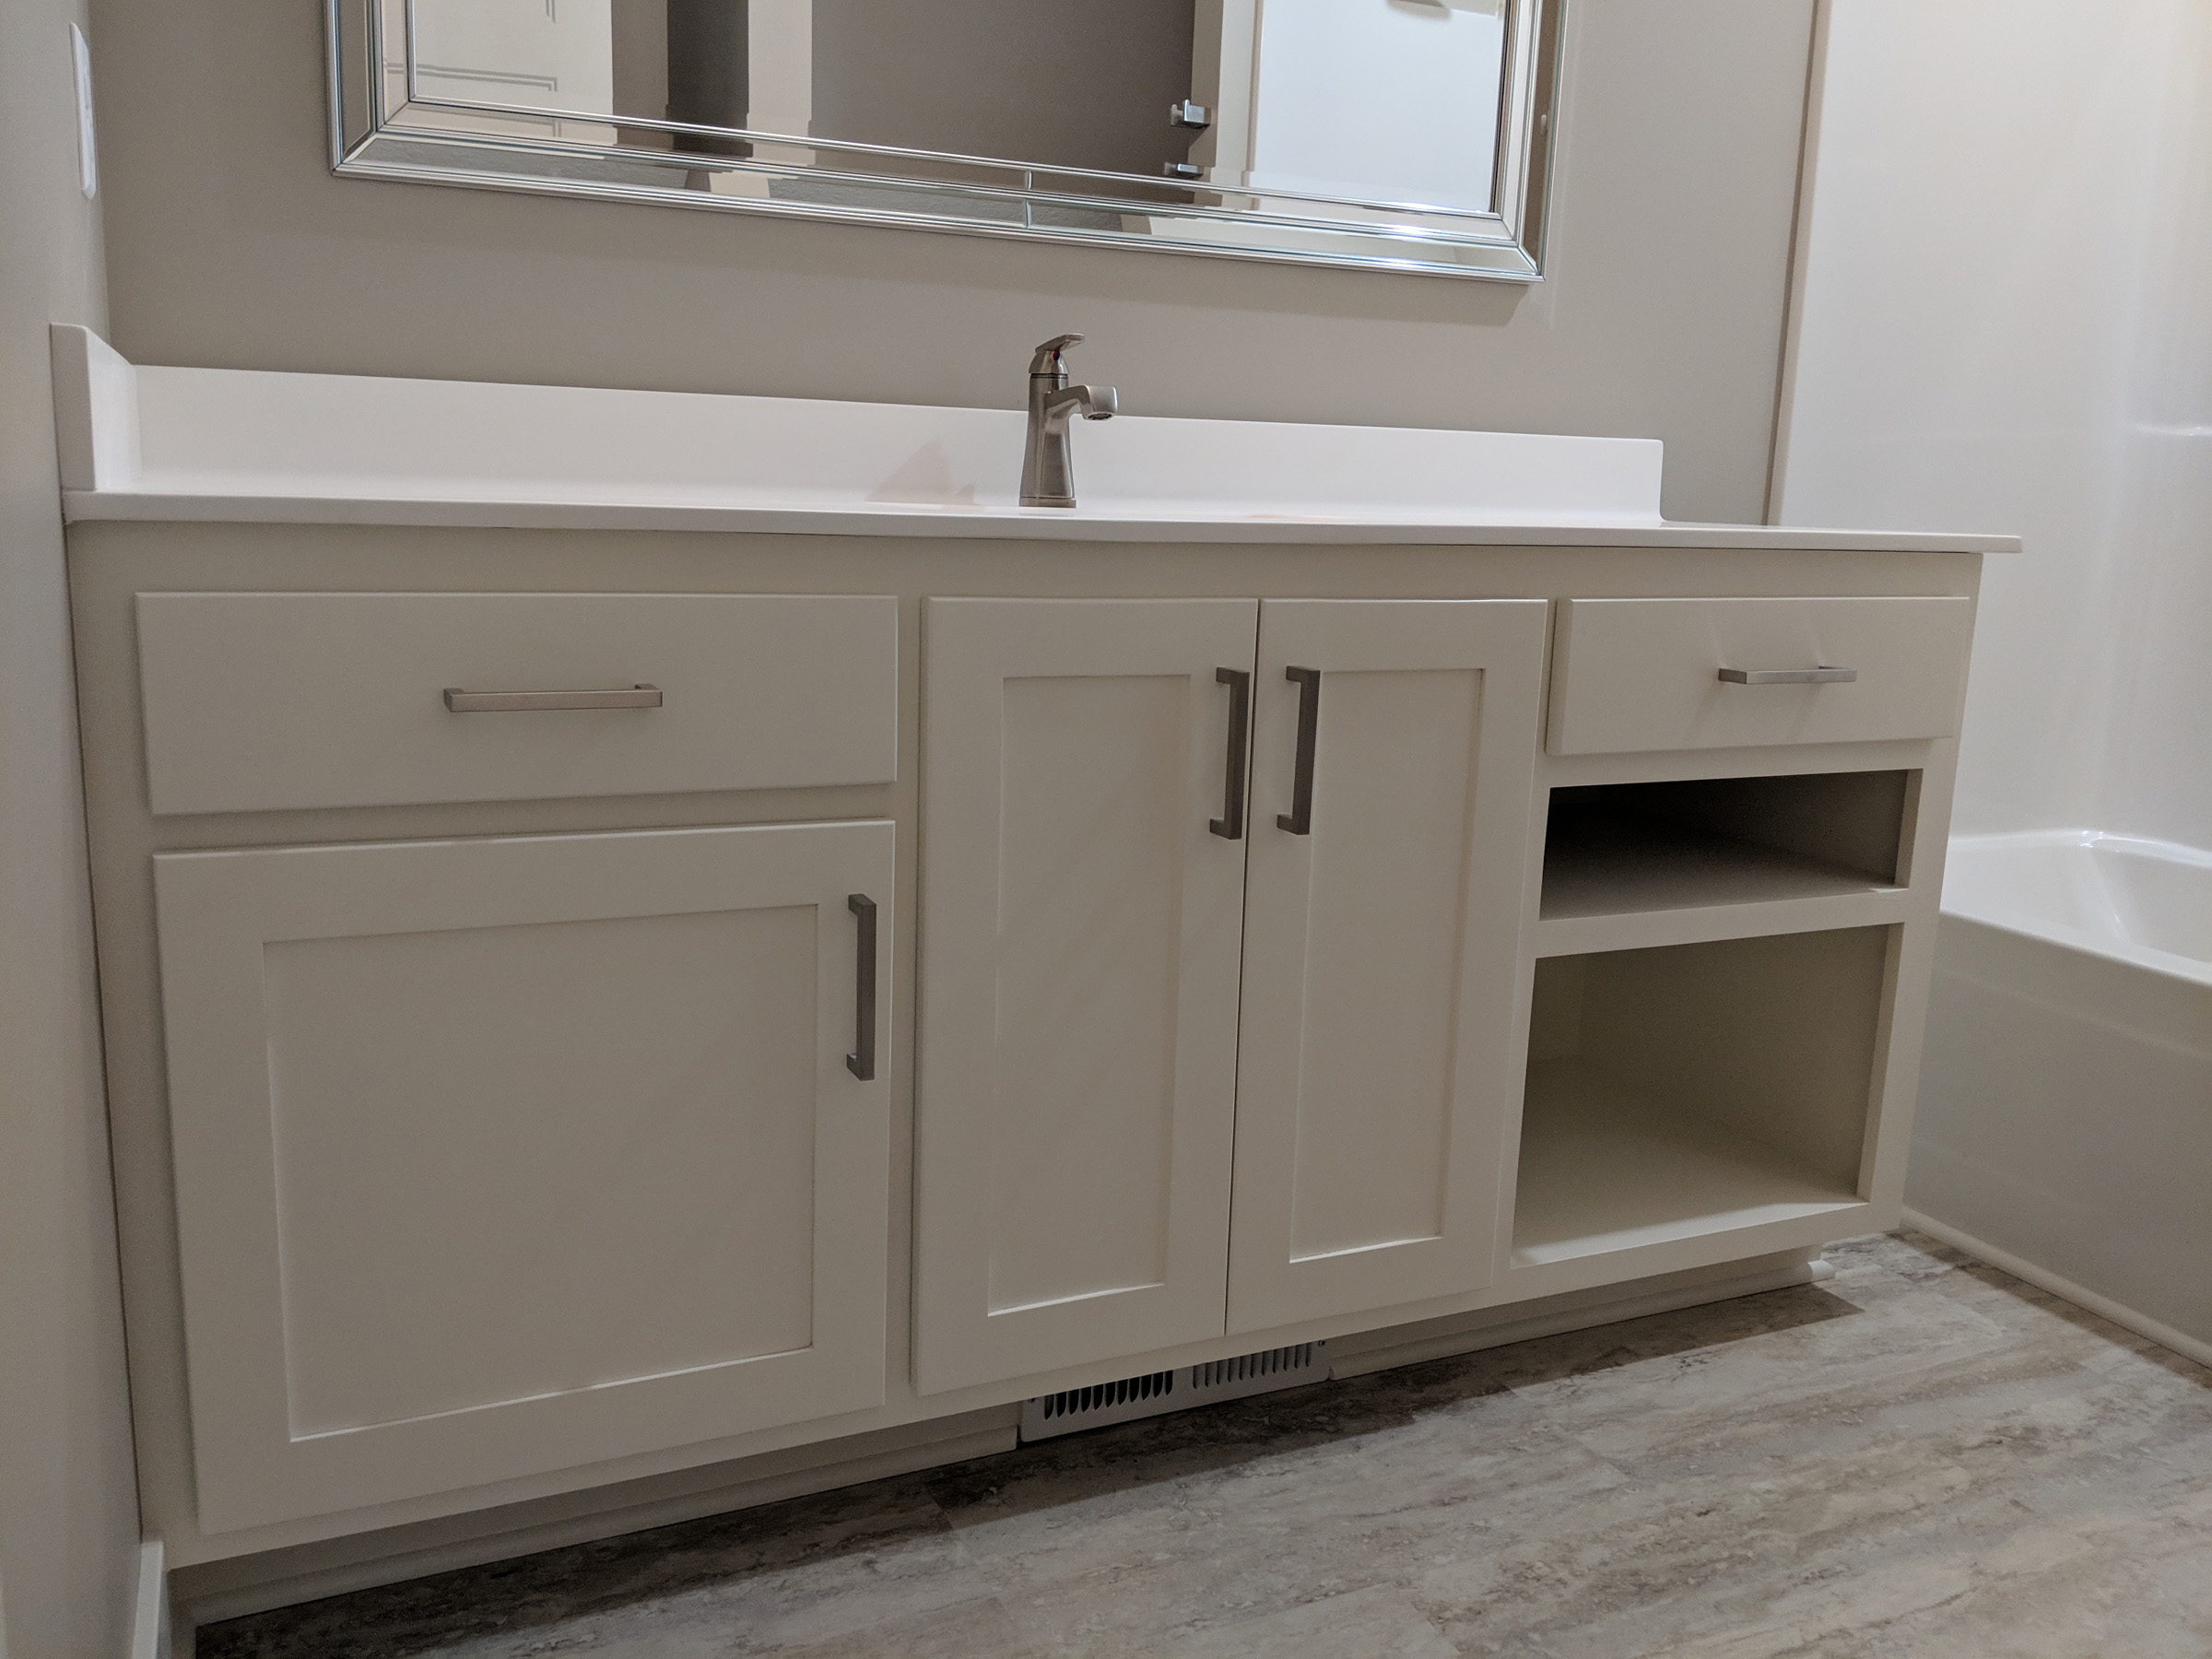 Enameled bath vanity